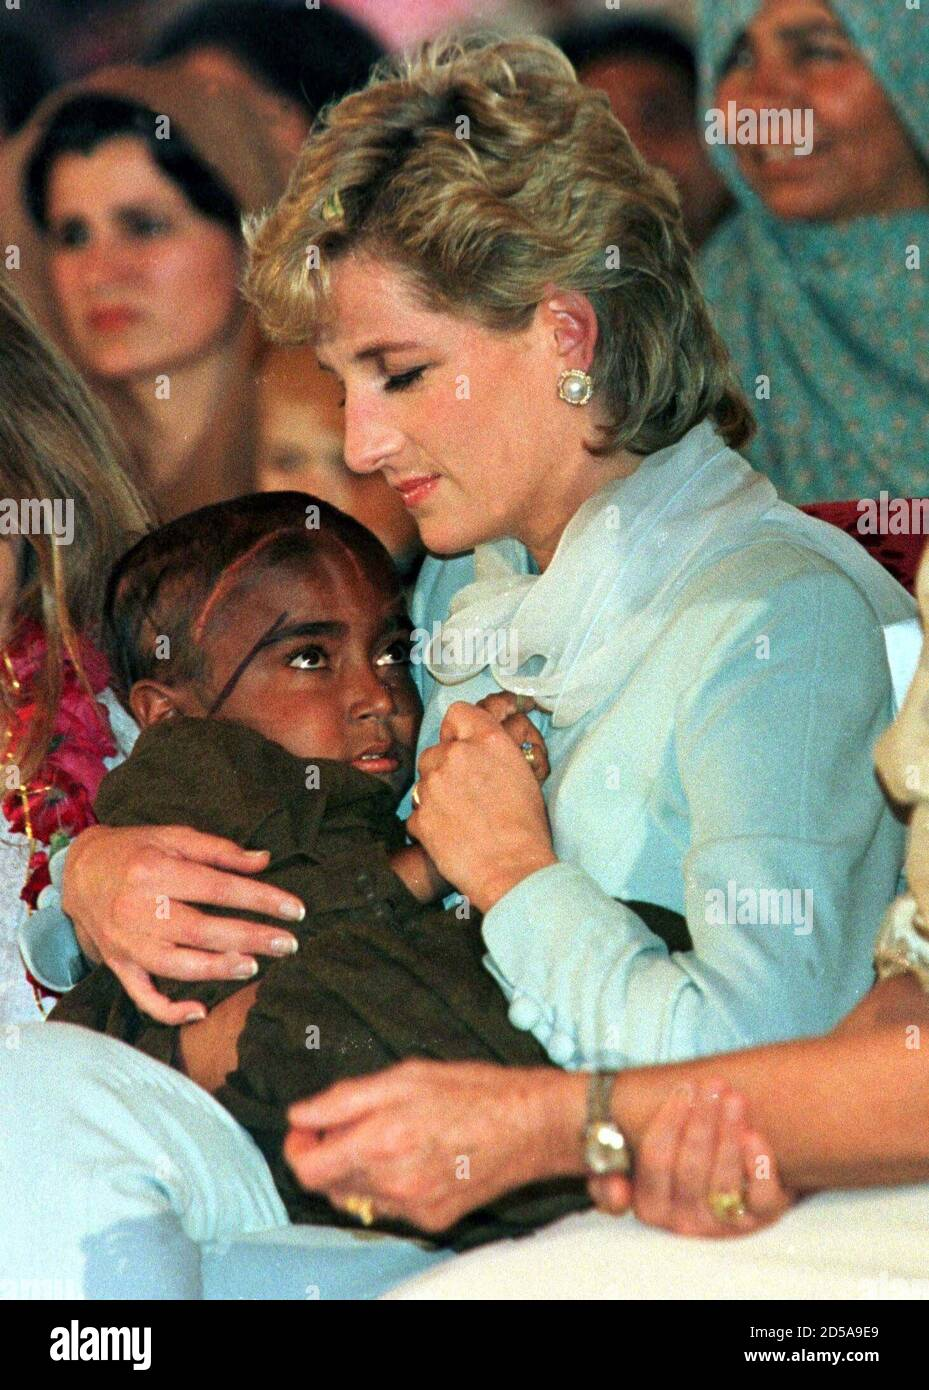 young princess diana high resolution stock photography and images alamy https www alamy com file picture 22aug96 princess diana cradles a young child with cancer during a show at the shaukut khanum memorial cancer hospital in lahore pakistan next monday august 31 marks the first anniversary of princess dianas death from injuries sustained in a car crash in paris kc image381928353 html